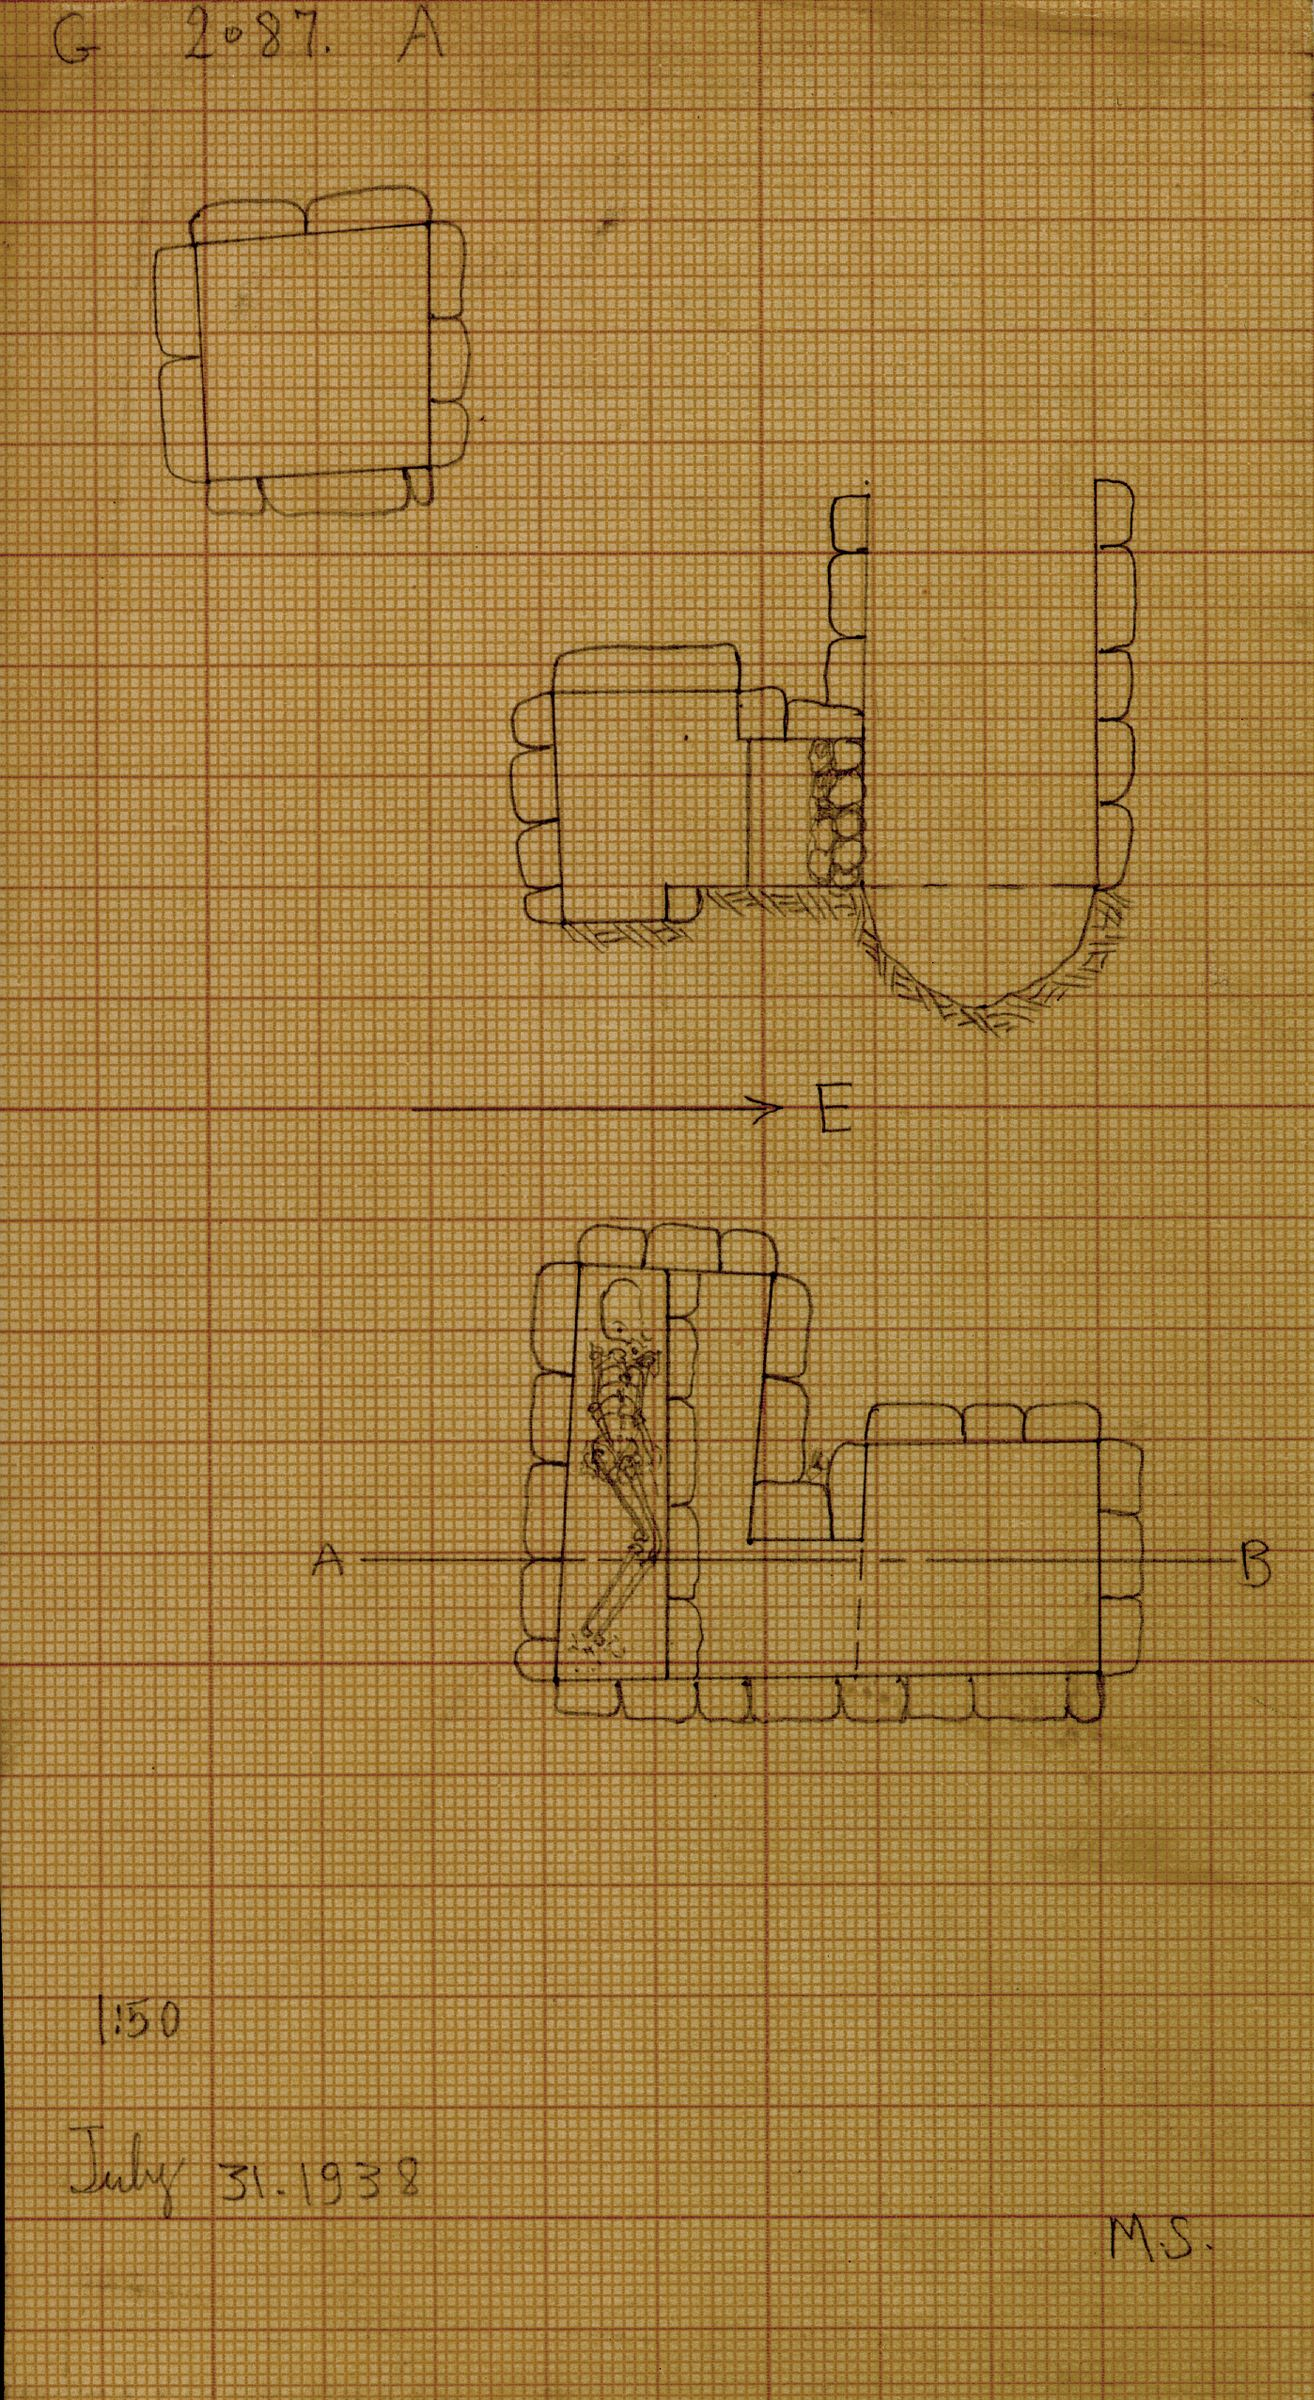 Maps and plans: G 2087, Shaft A